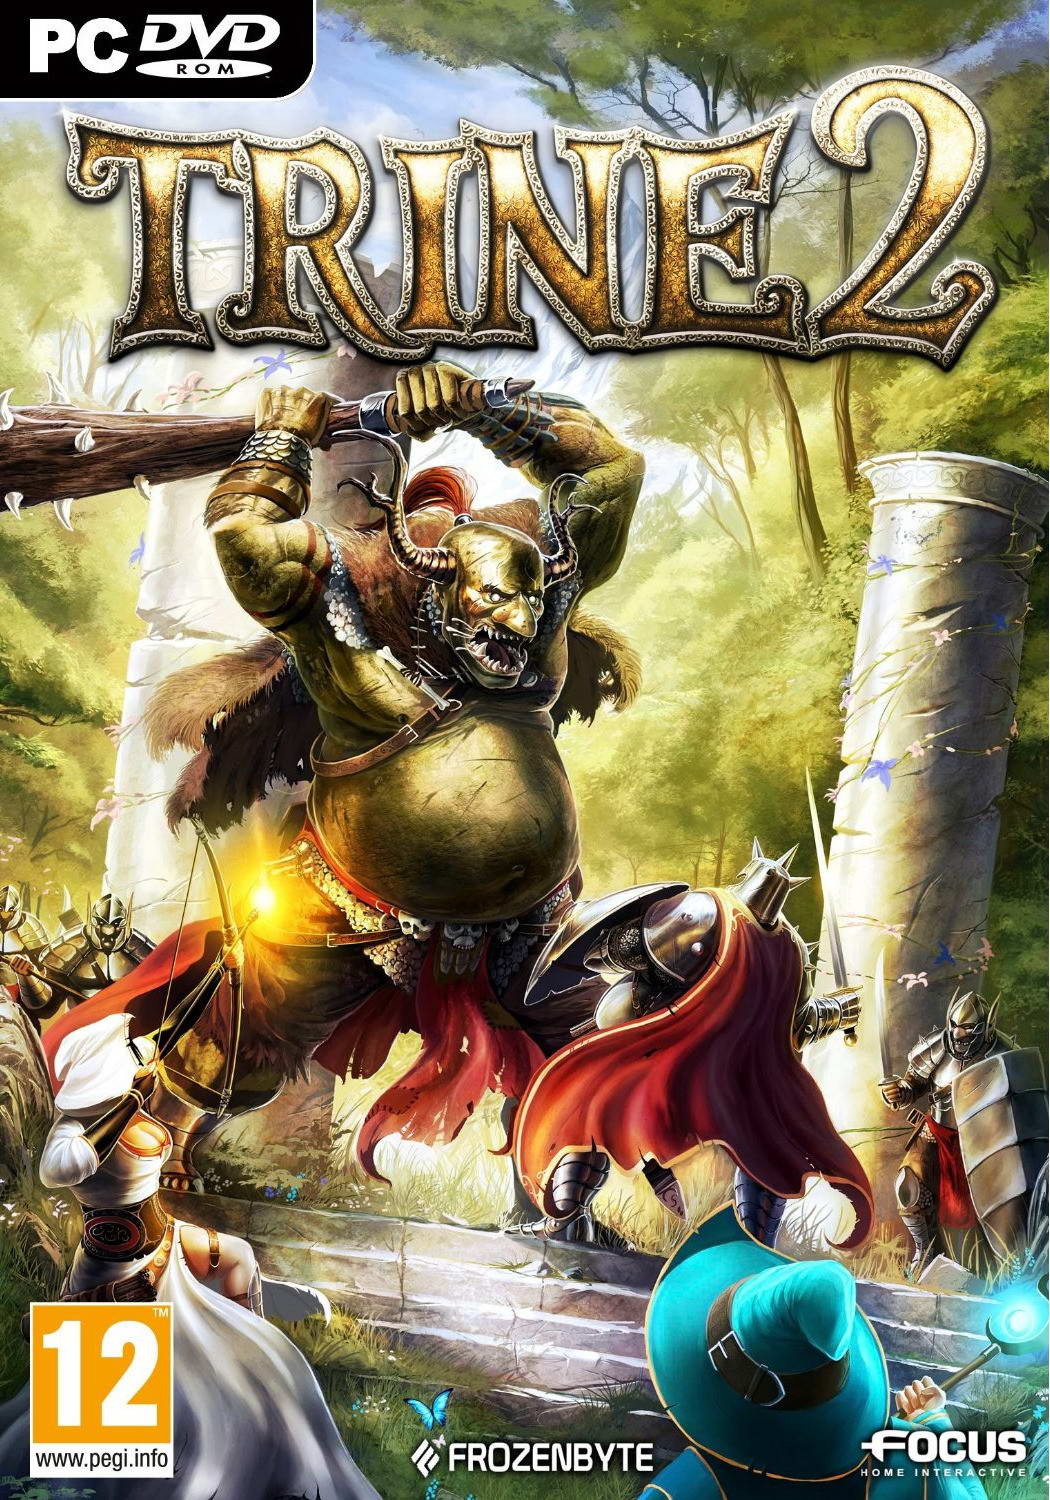 Full Version Ios: Free Download PC Game And Software Full Version: Trine 2